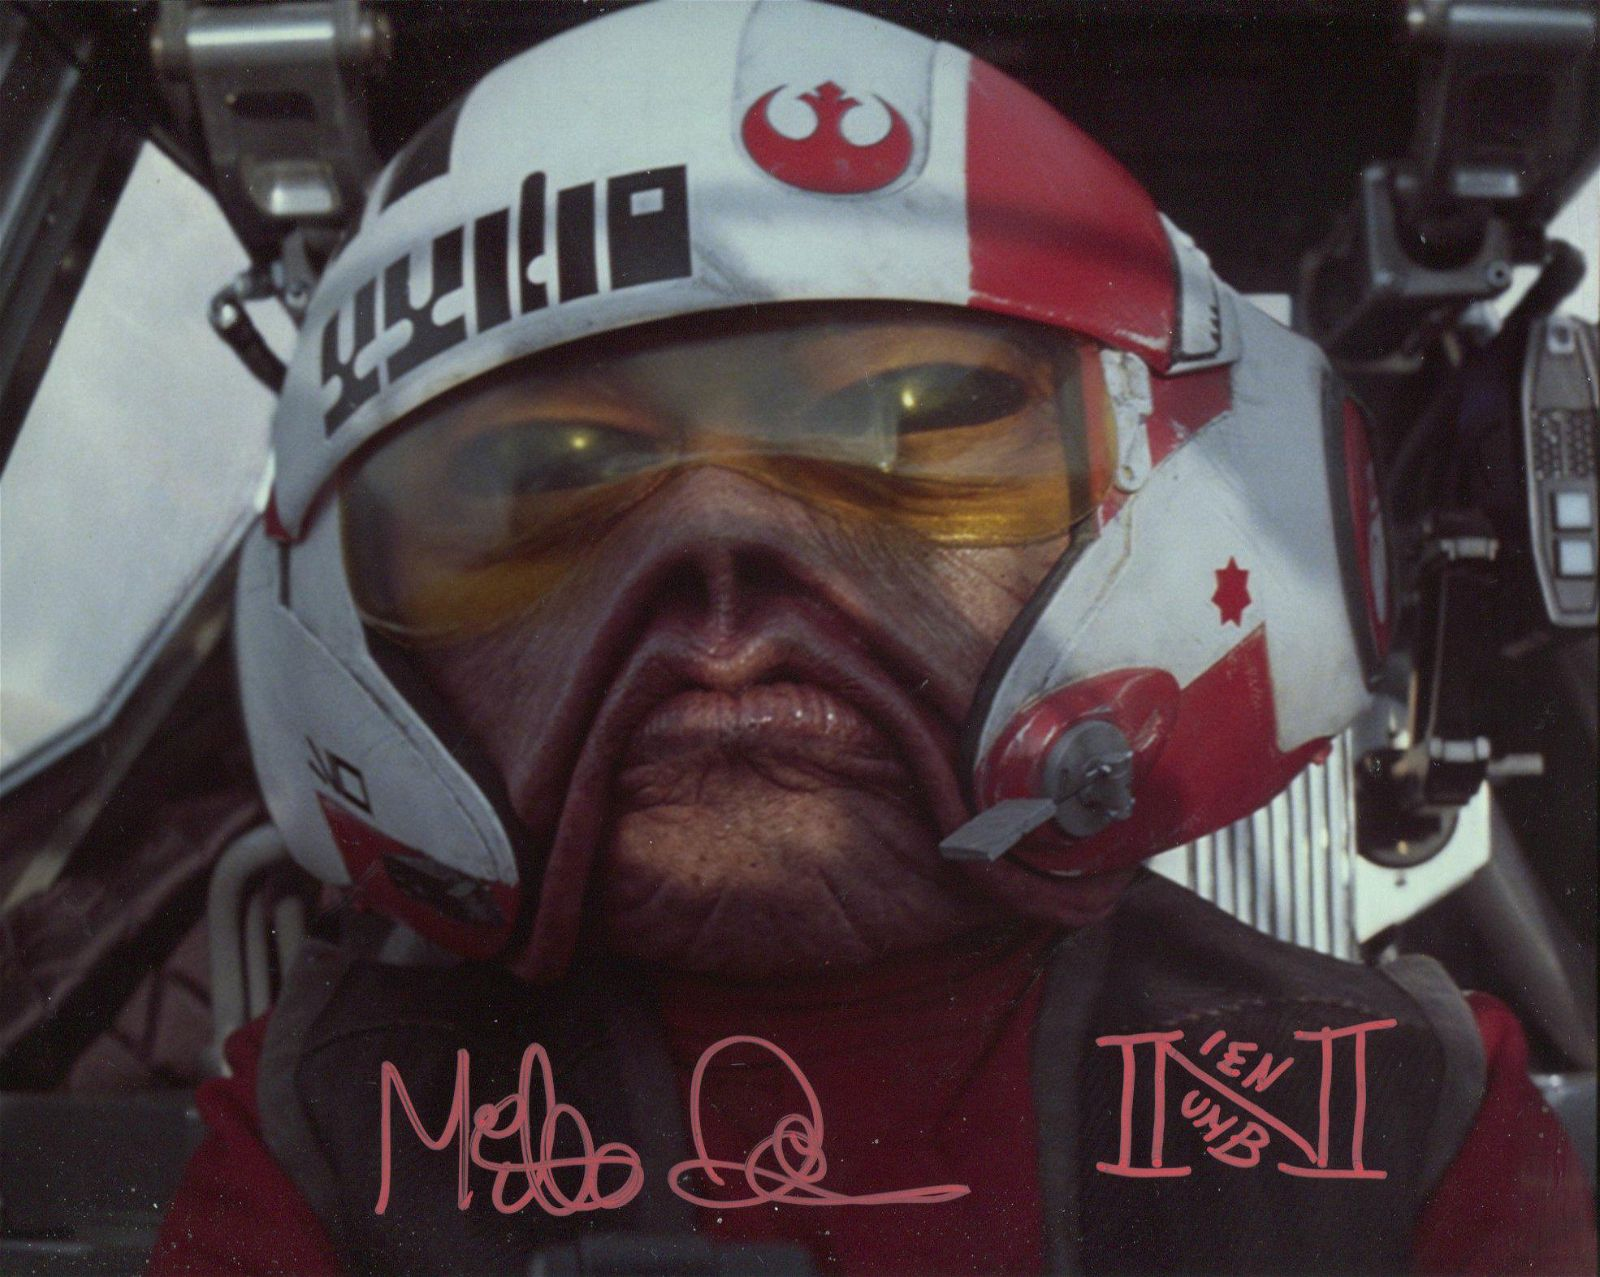 Star Wars 8x10 photo signed by actor Mike Quinn as Nein